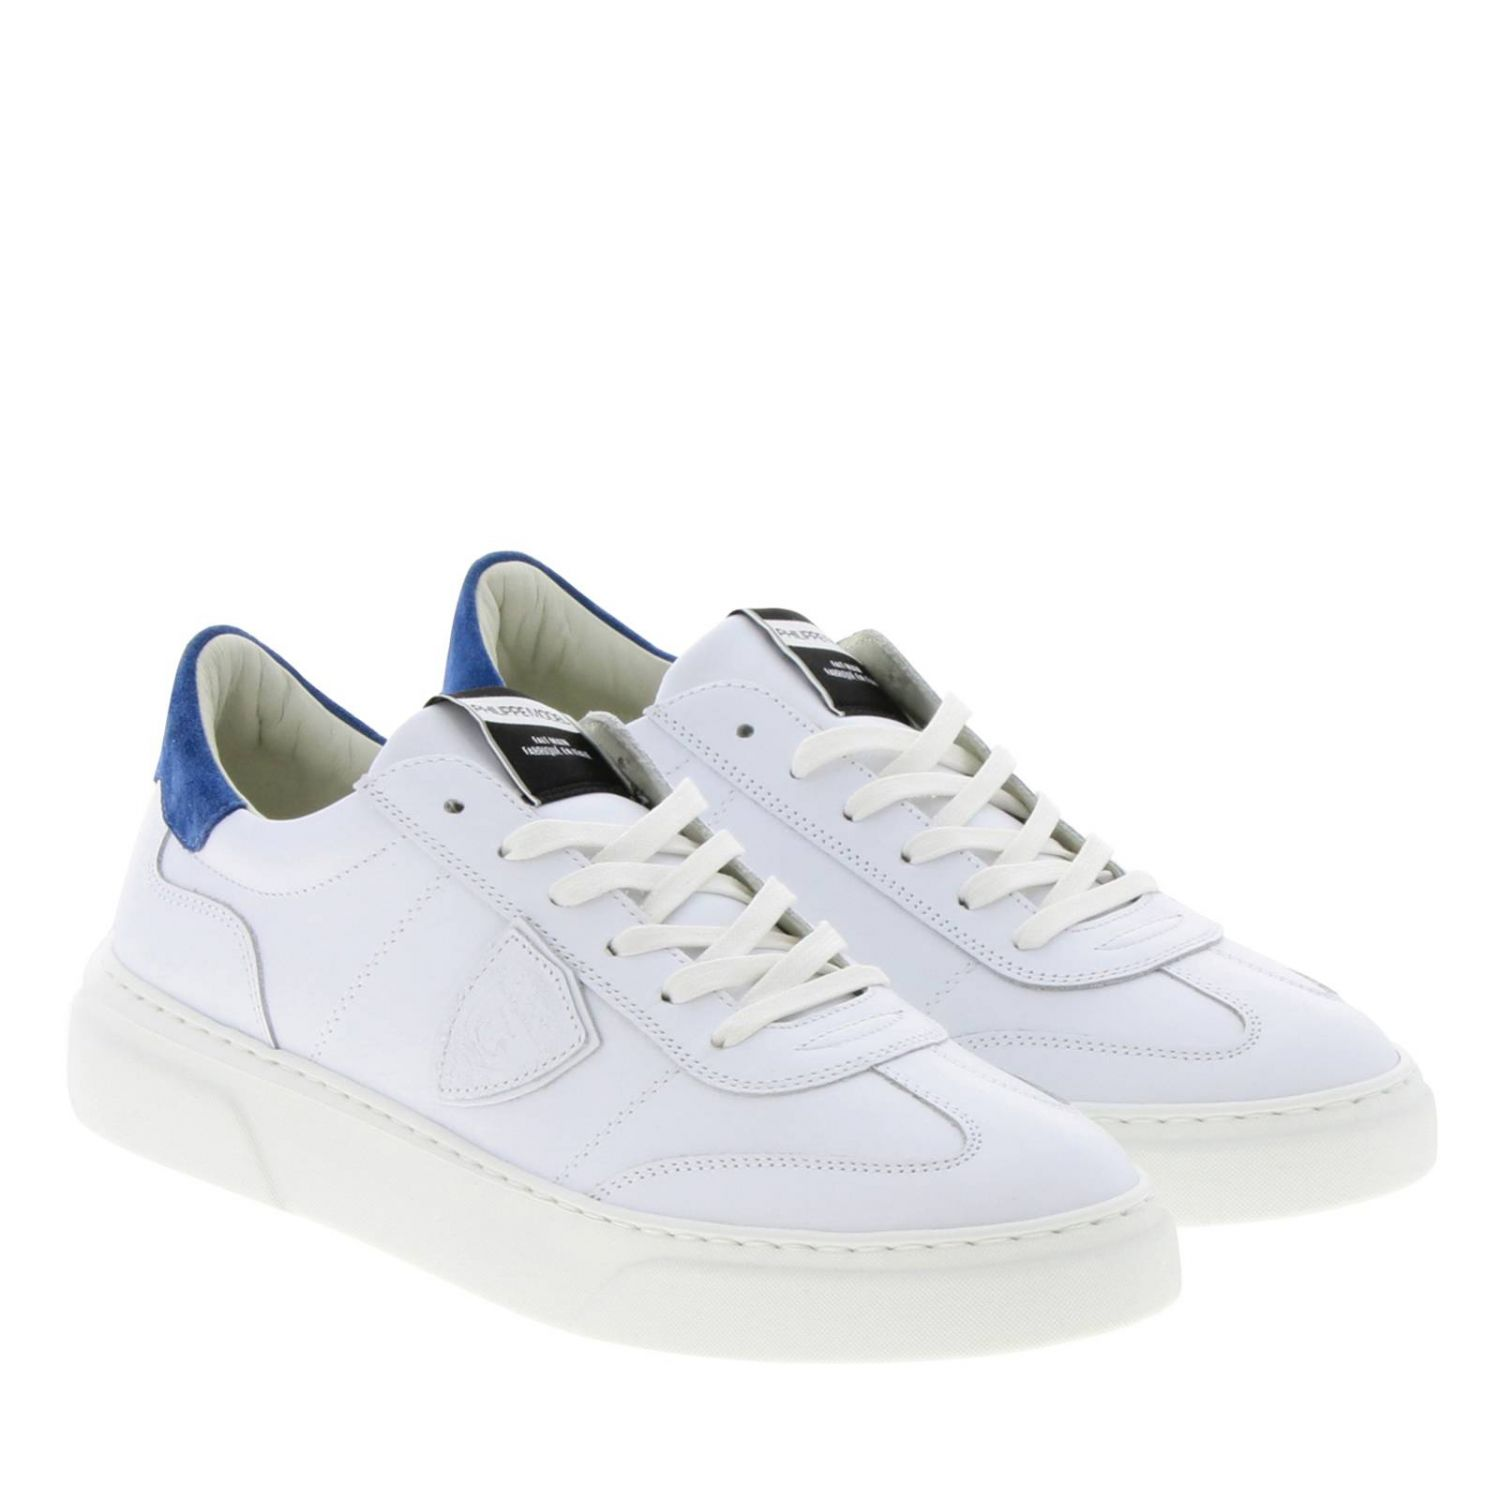 Shoes men Philippe Model blue 2